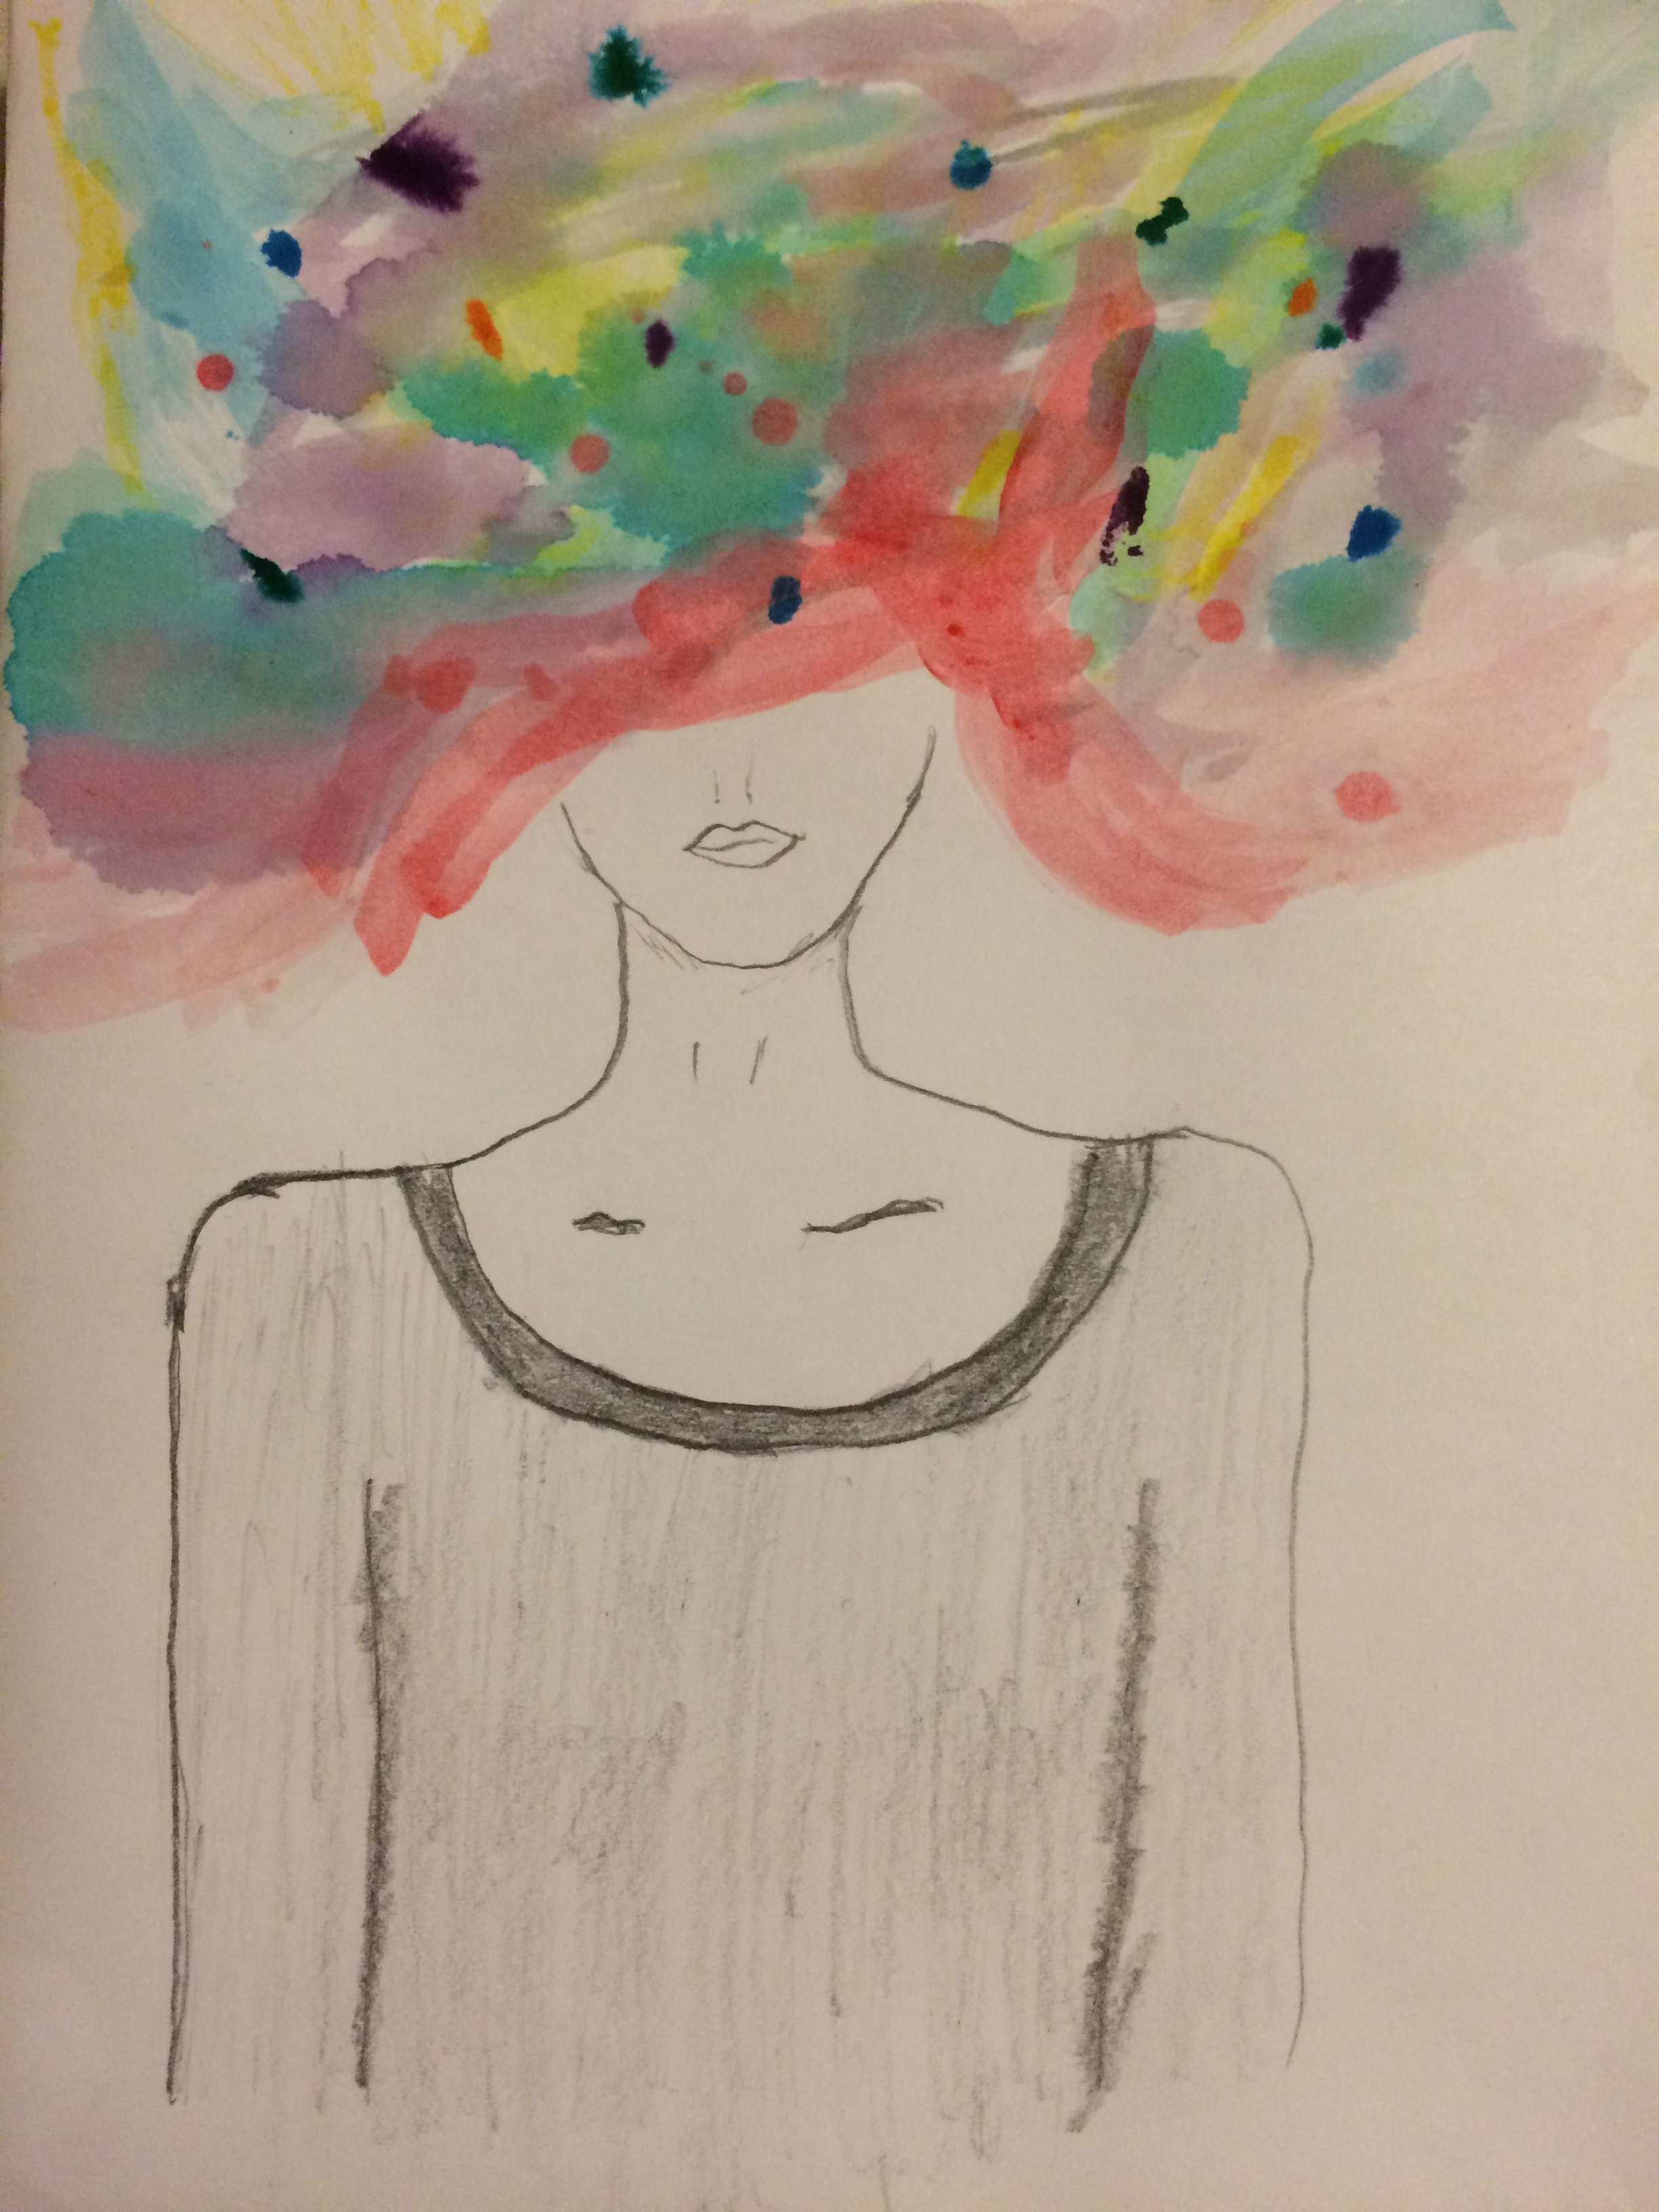 Confusion-a woman with swirling colors for a head.